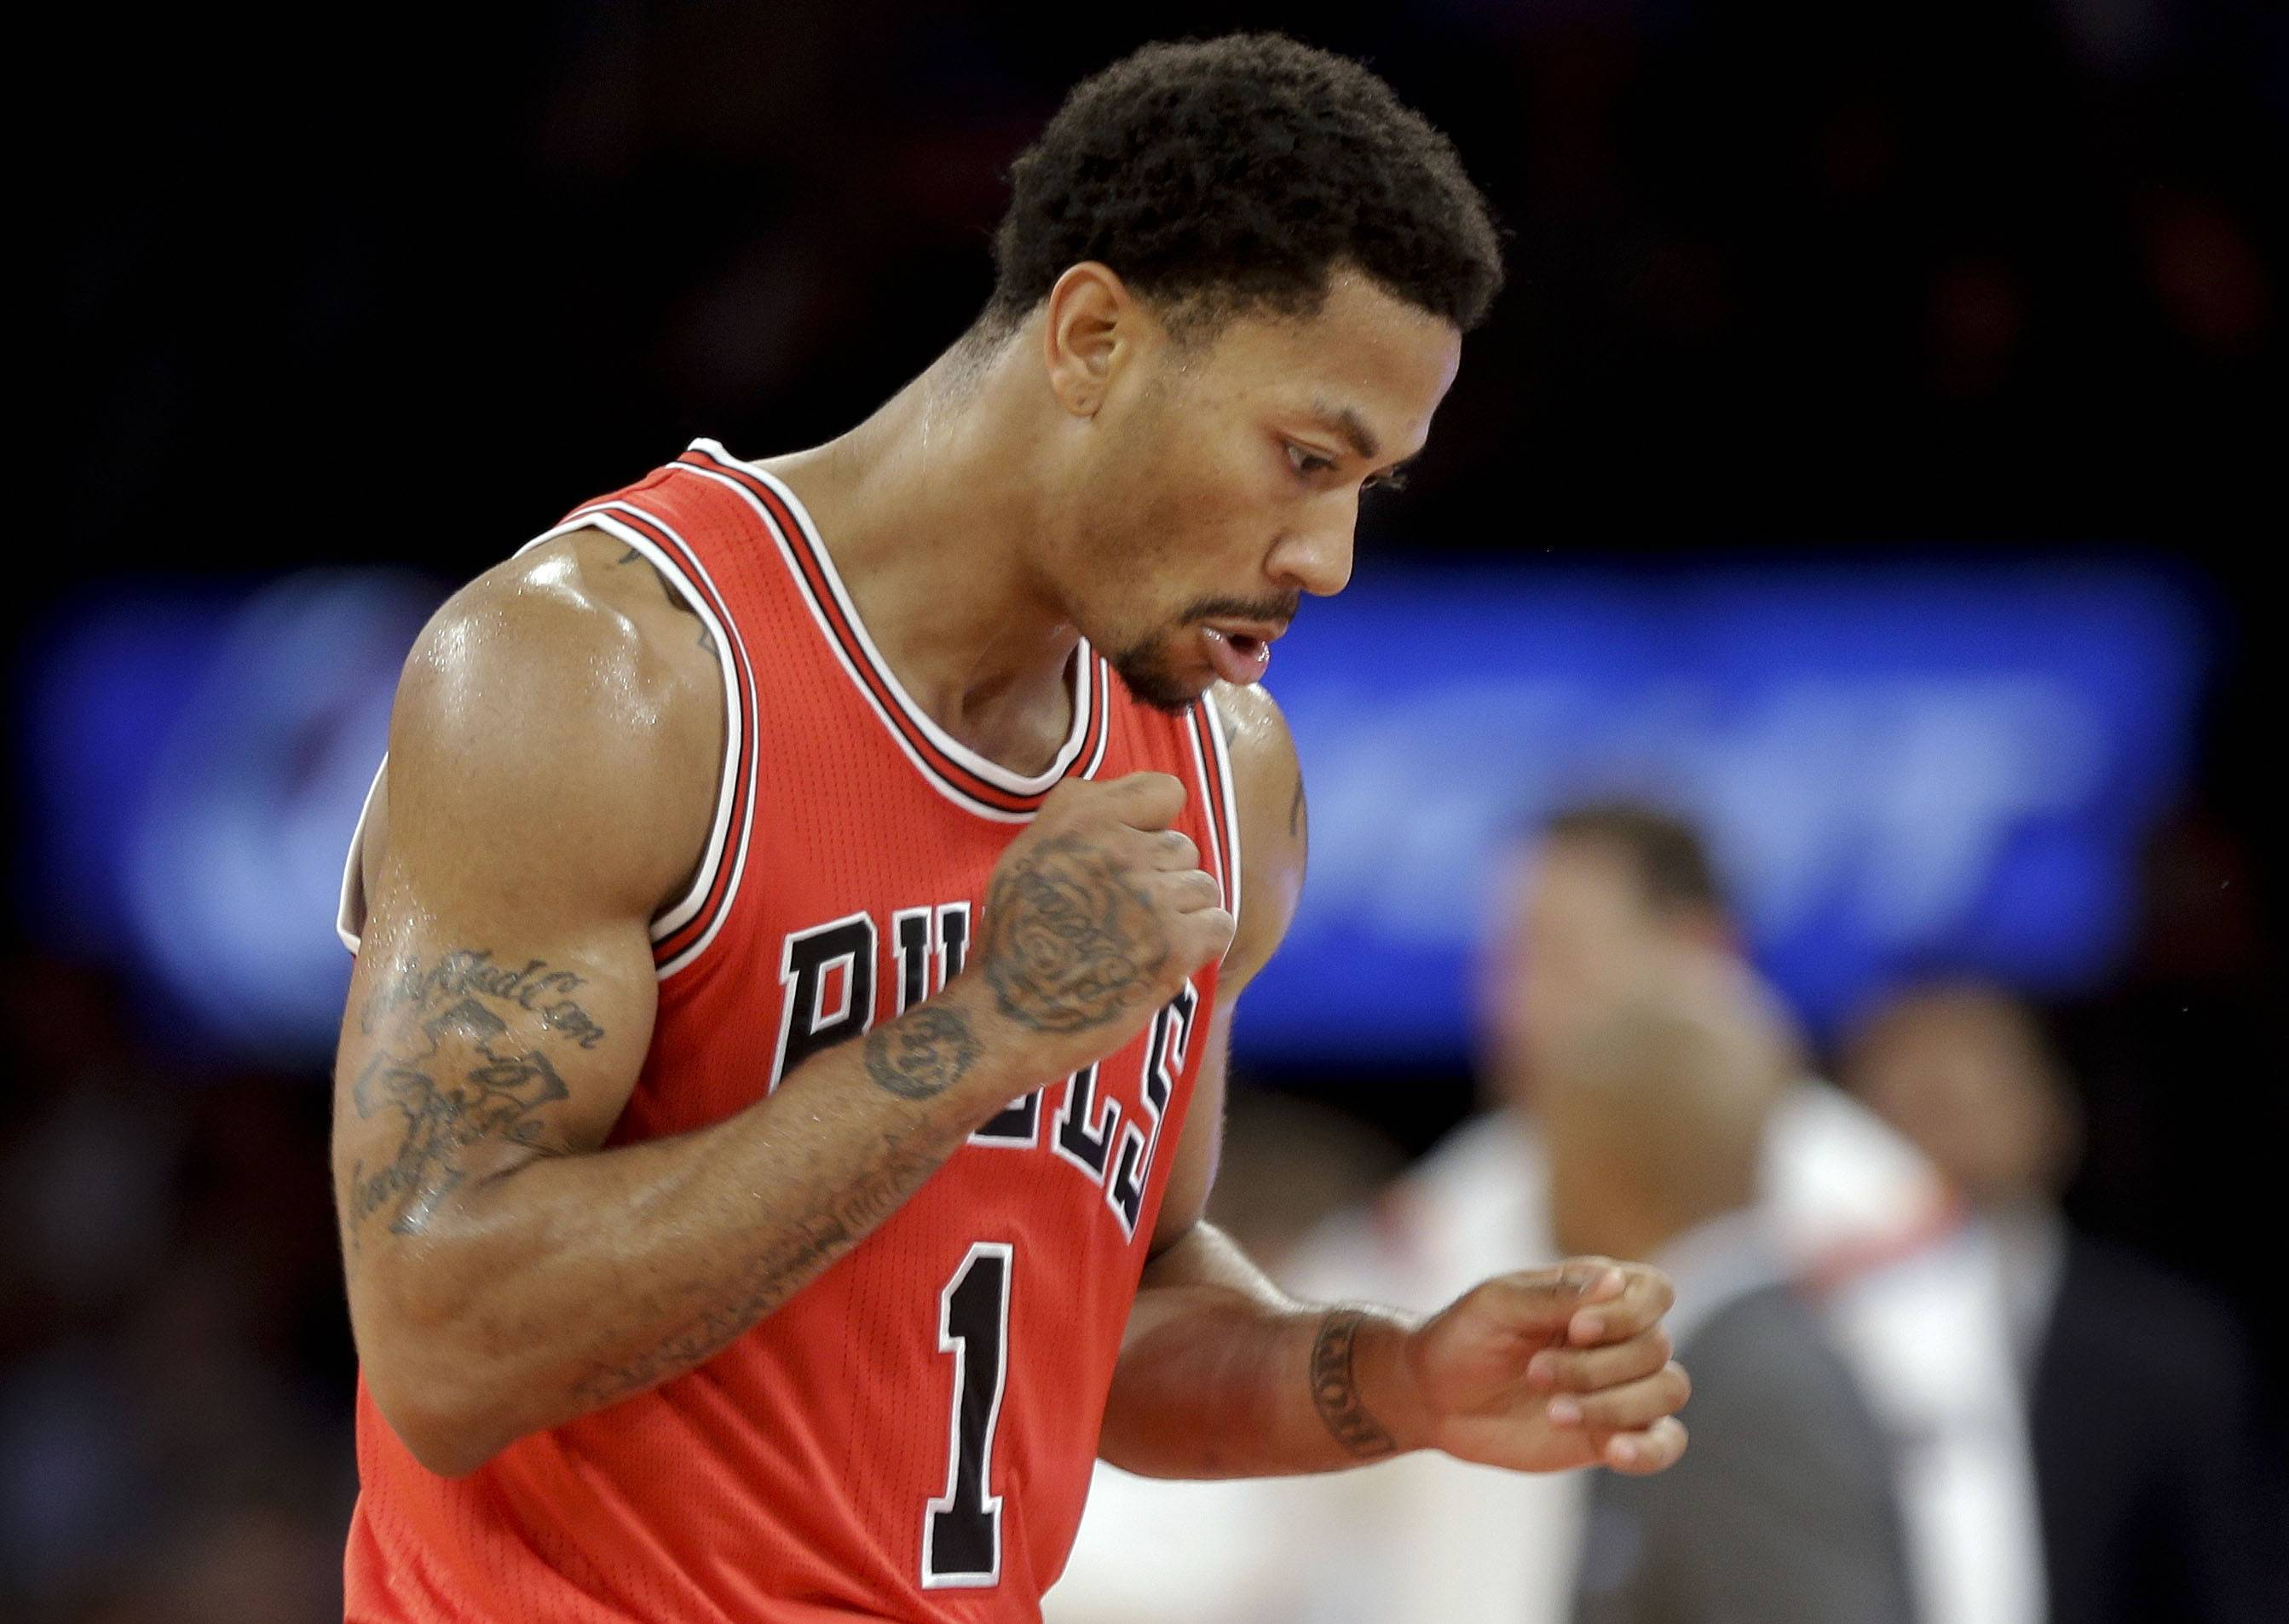 Opening night proved to be a big success for Derrick Rose and the Bulls. Rose finished with 13 points and 5 assists in just better than 21 minutes on the floor.